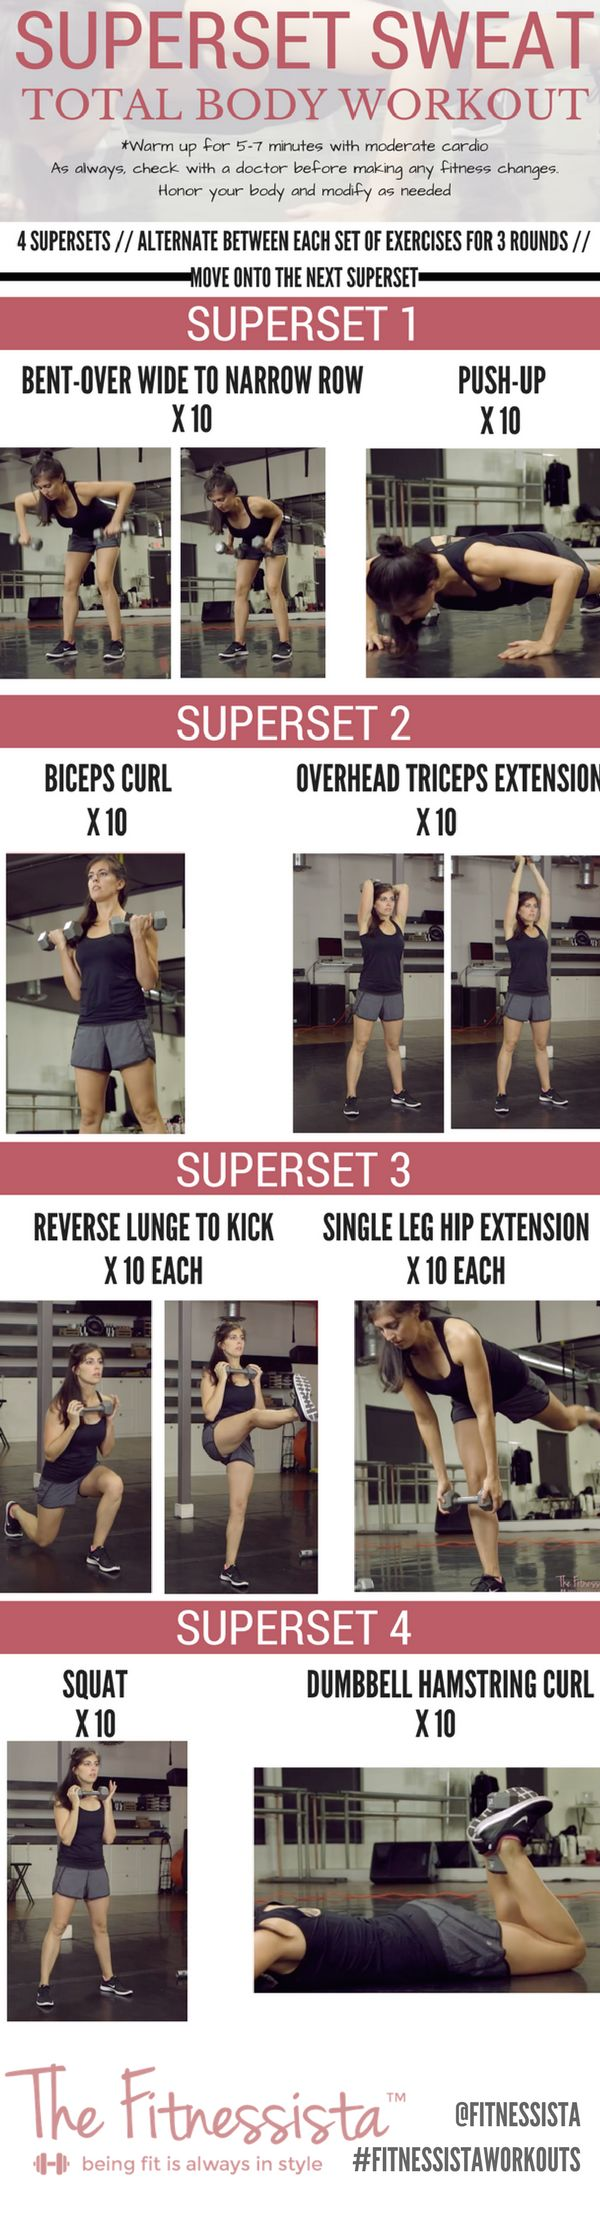 Total body superset workout. All you need is a pair of dumbbells! Work your entire body and burn a ton of calories. fitnessista.com